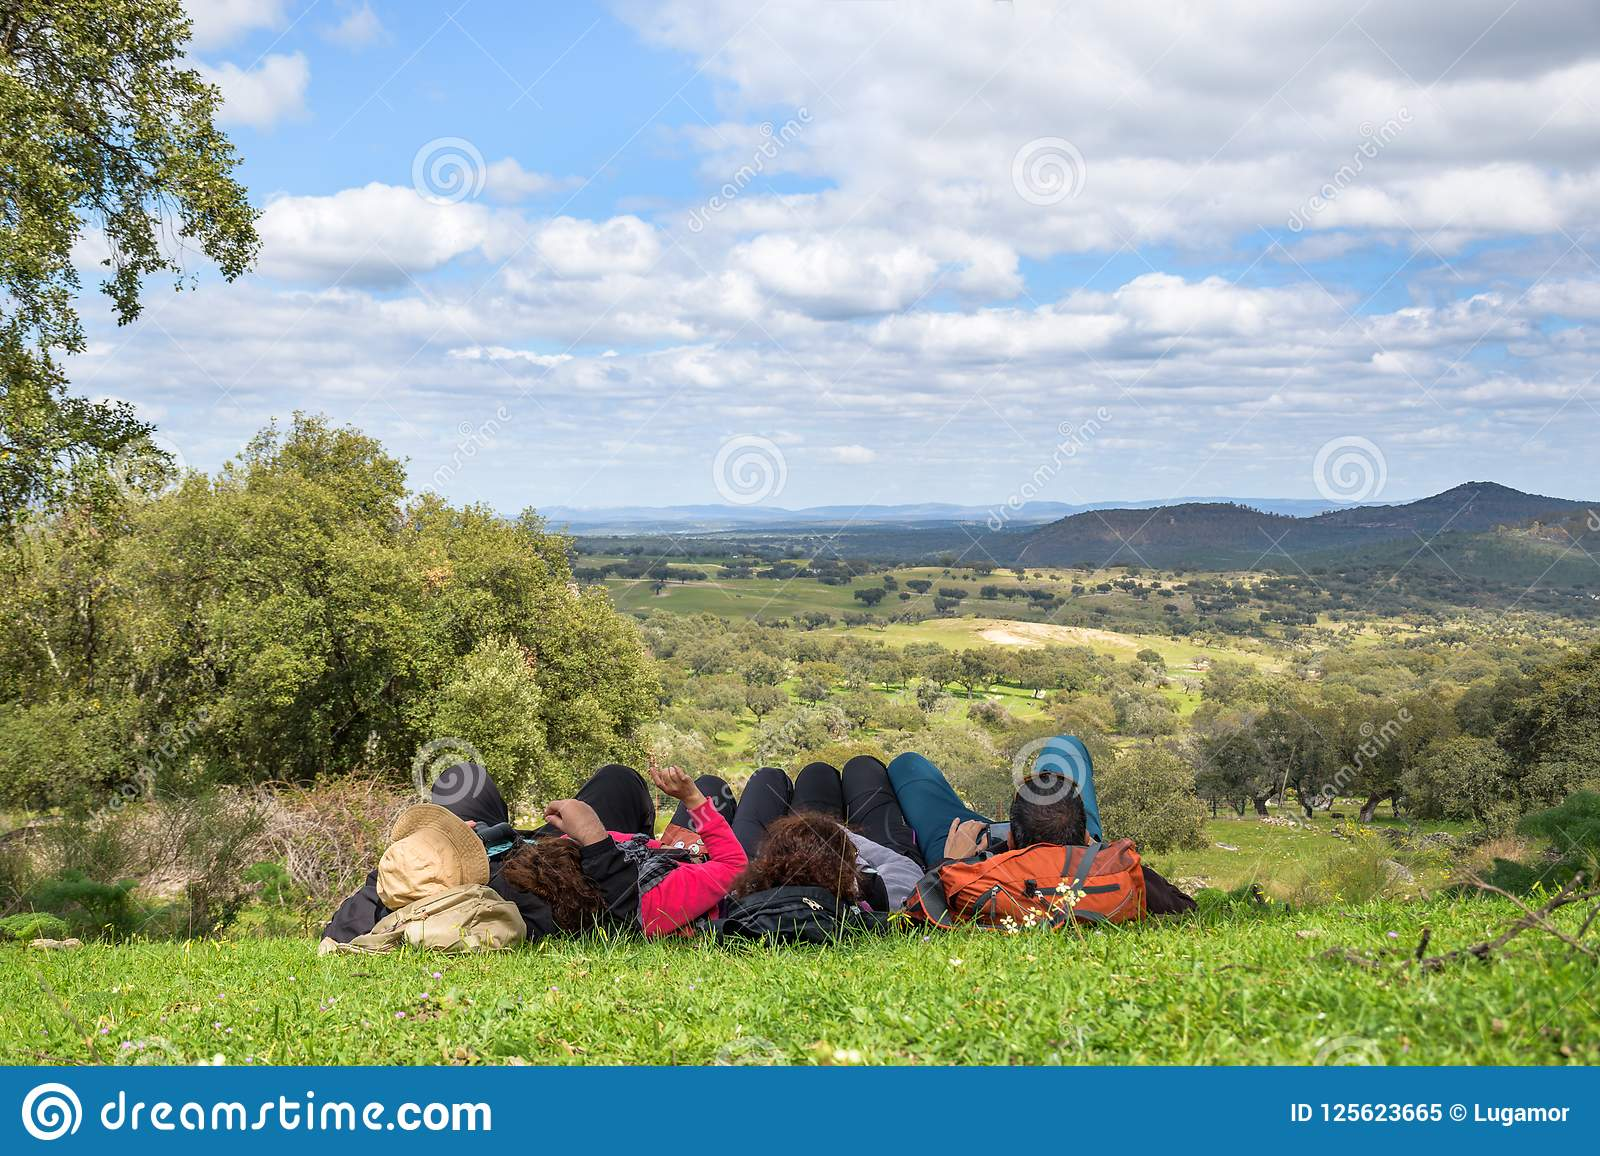 Group of people lying down looking towards the Meadow in the shade of an oak tree on a beautiful spring day.